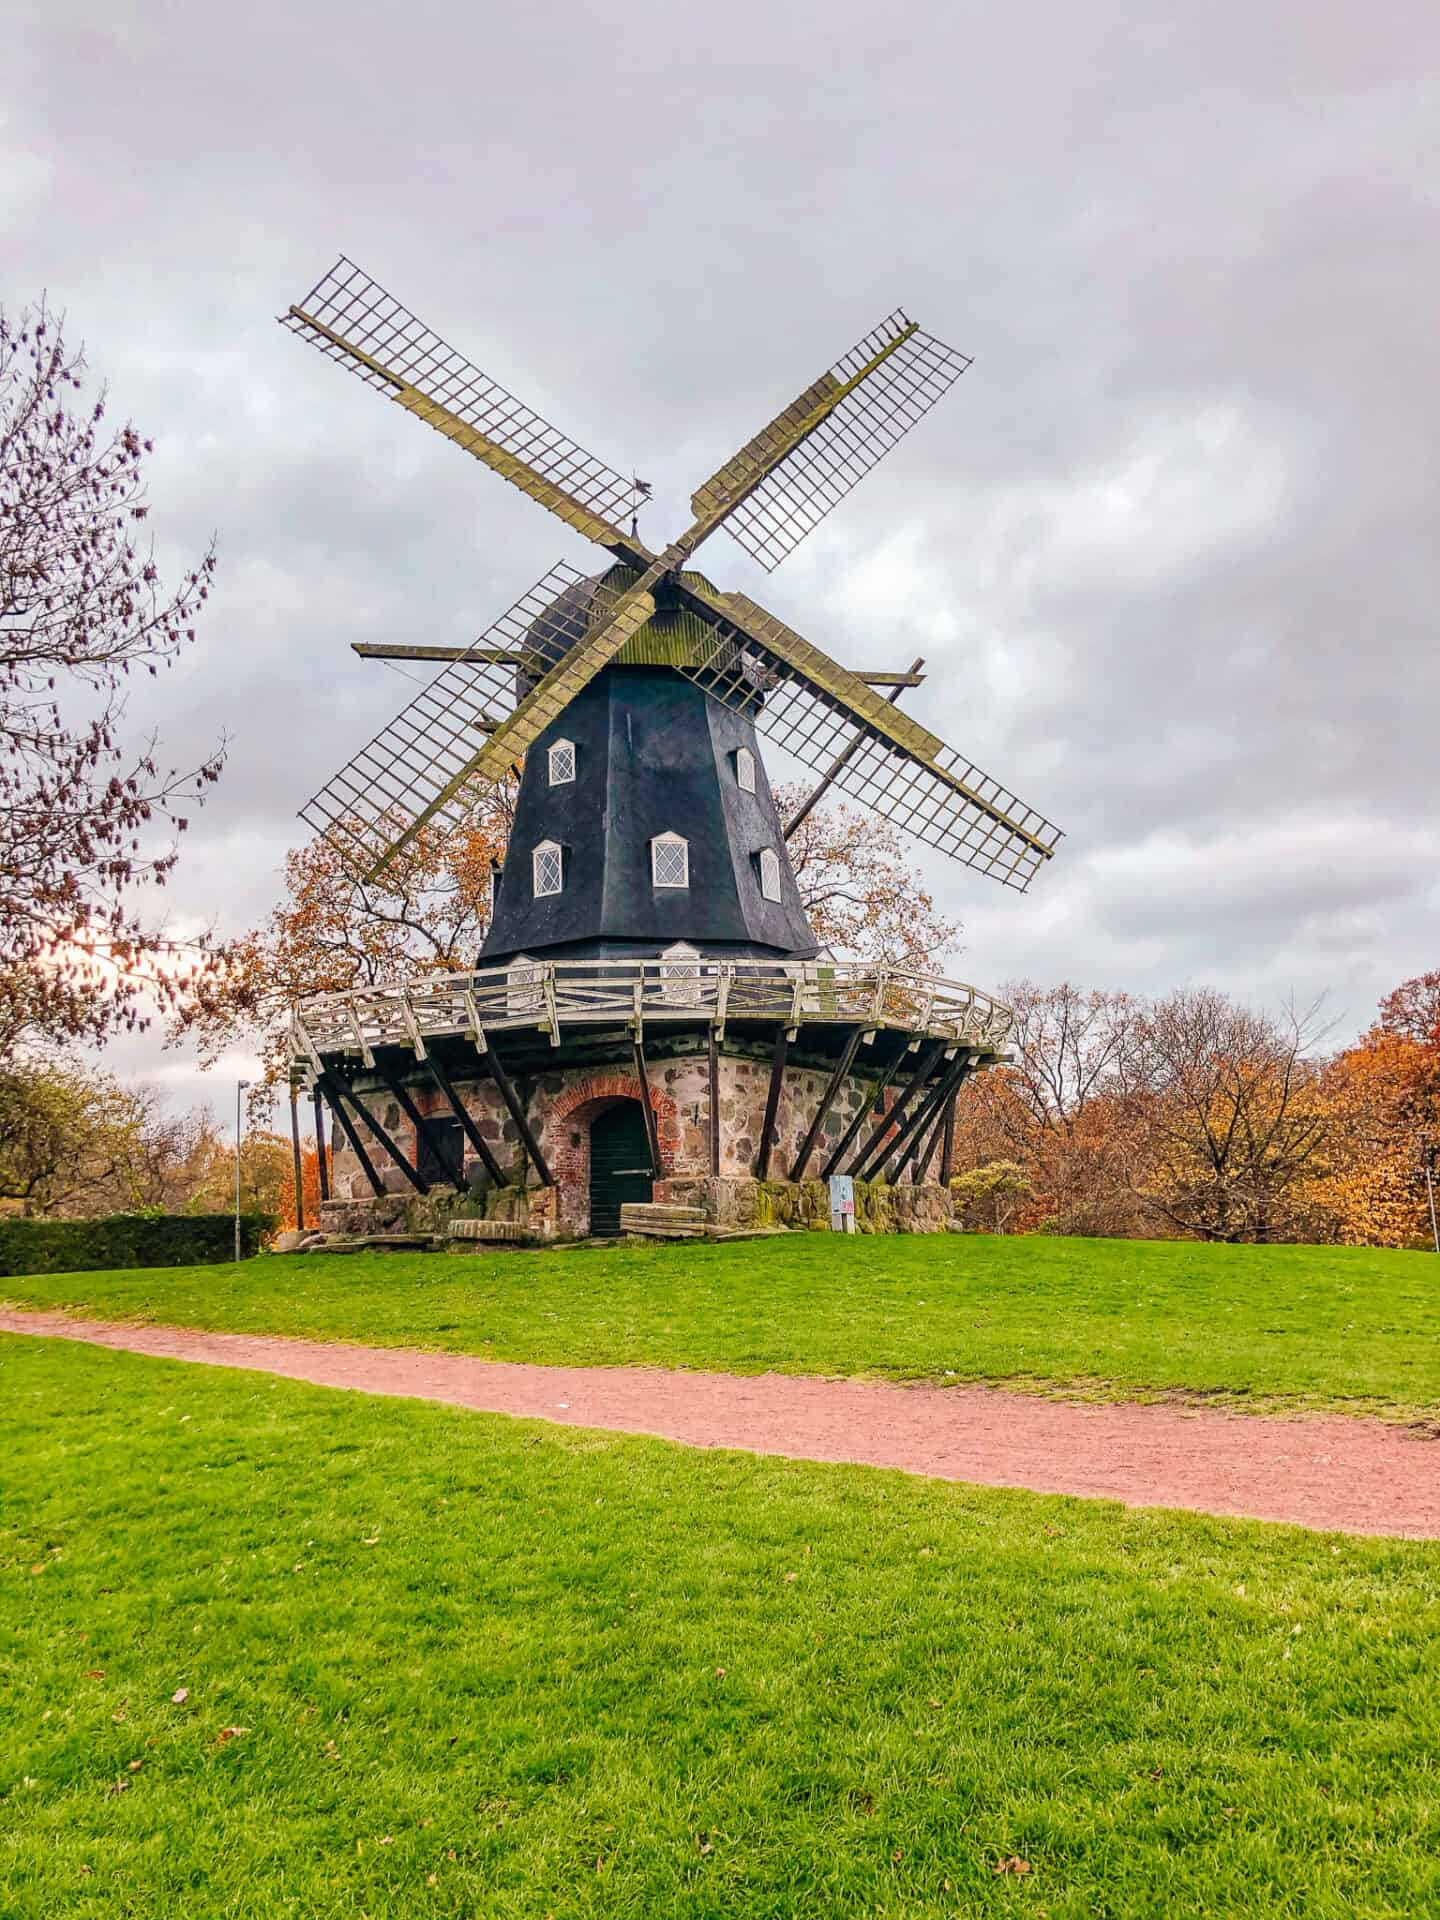 Blue windmill in the middle of bright green grass